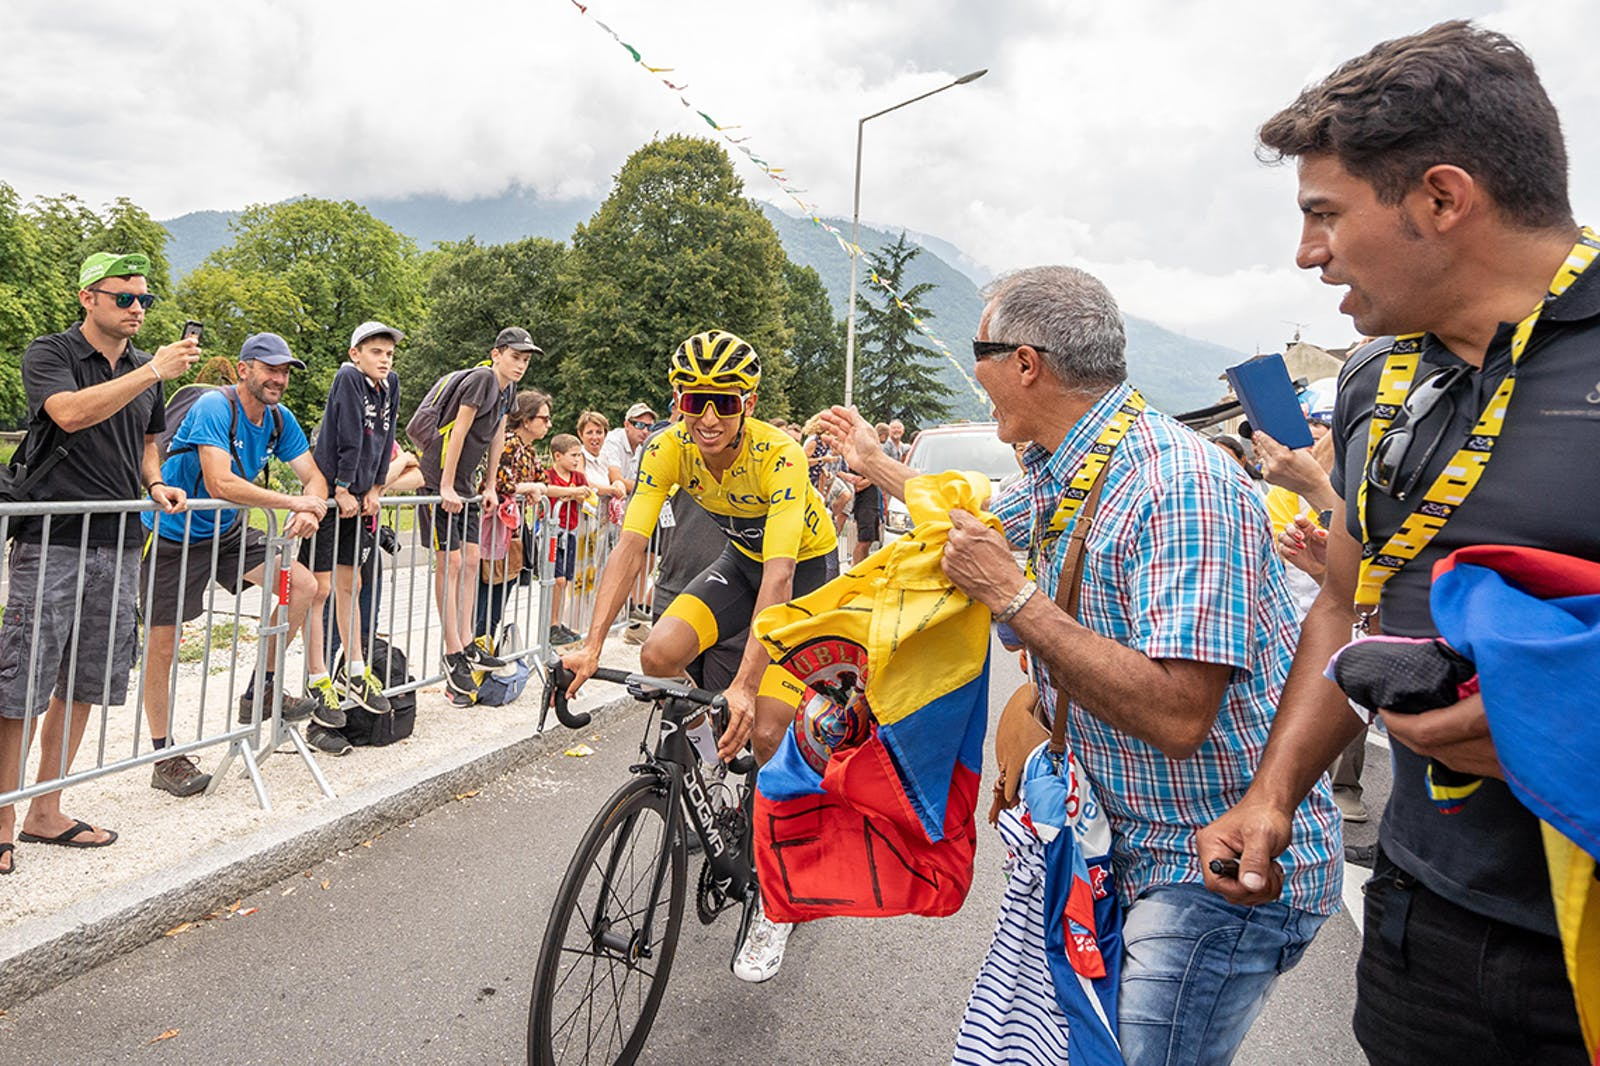 Egan Bernal wins the yellow jersey